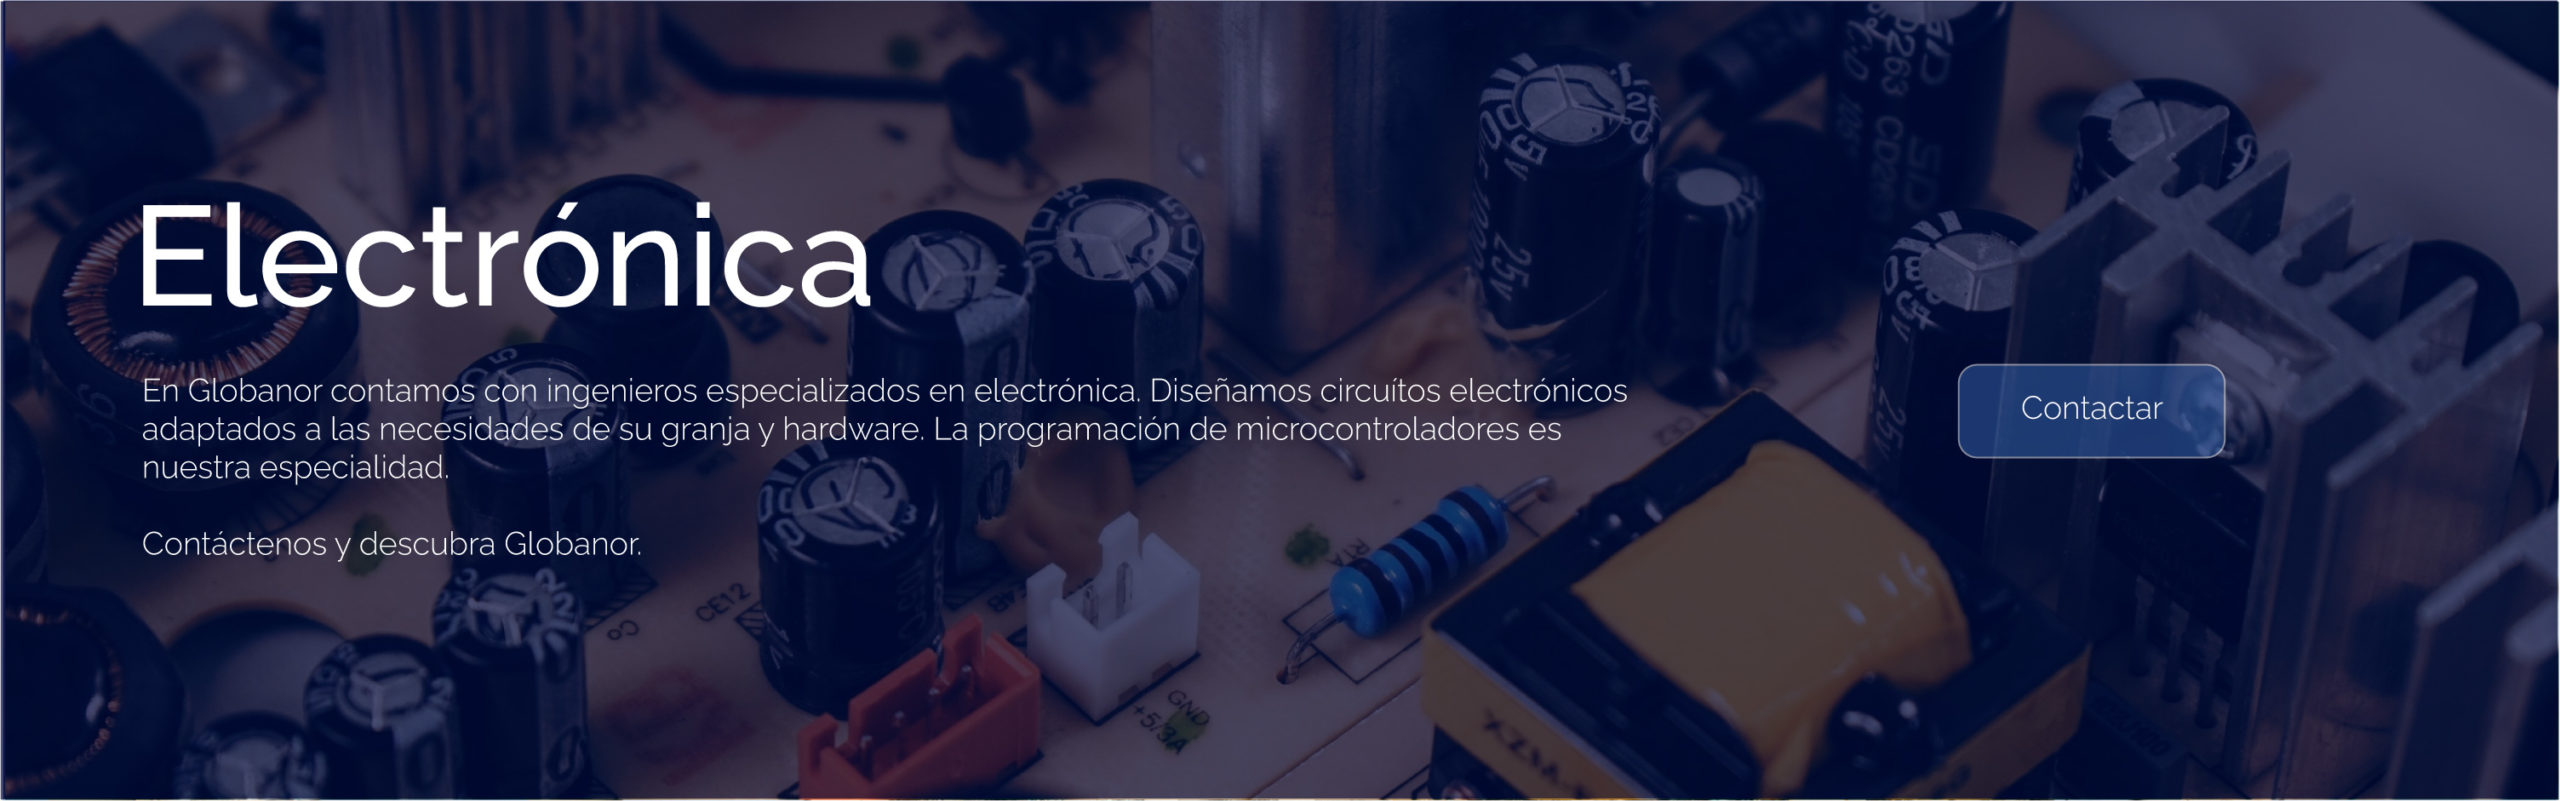 s_electronica